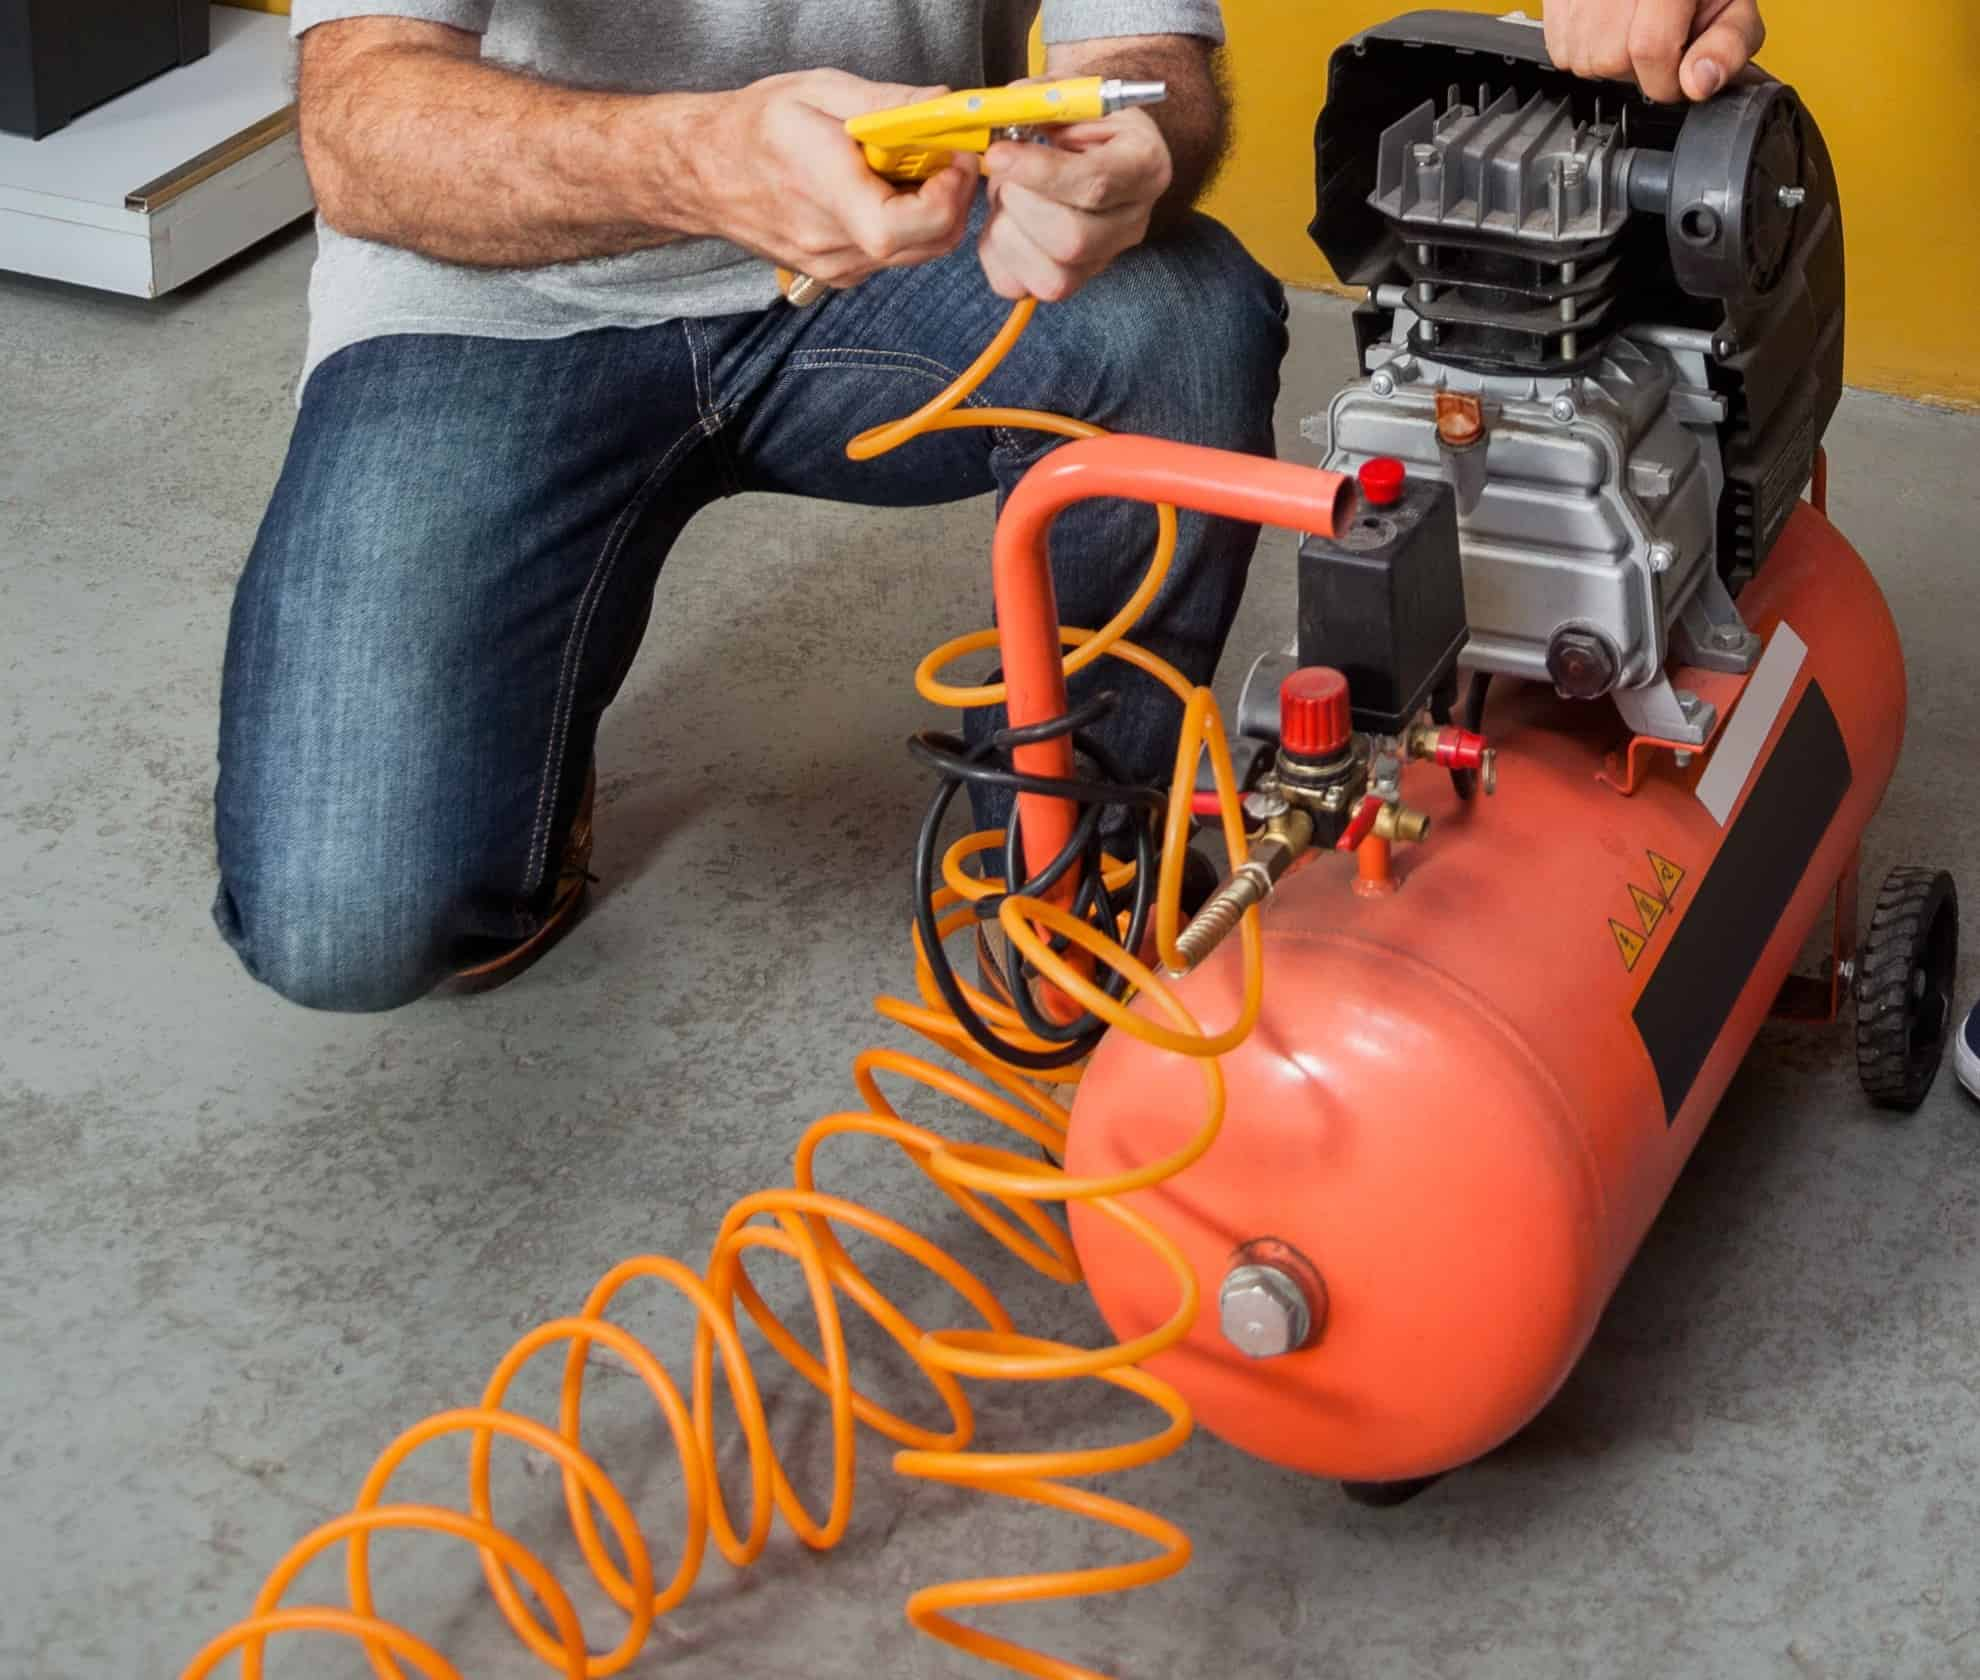 Setting up an Air Compressor